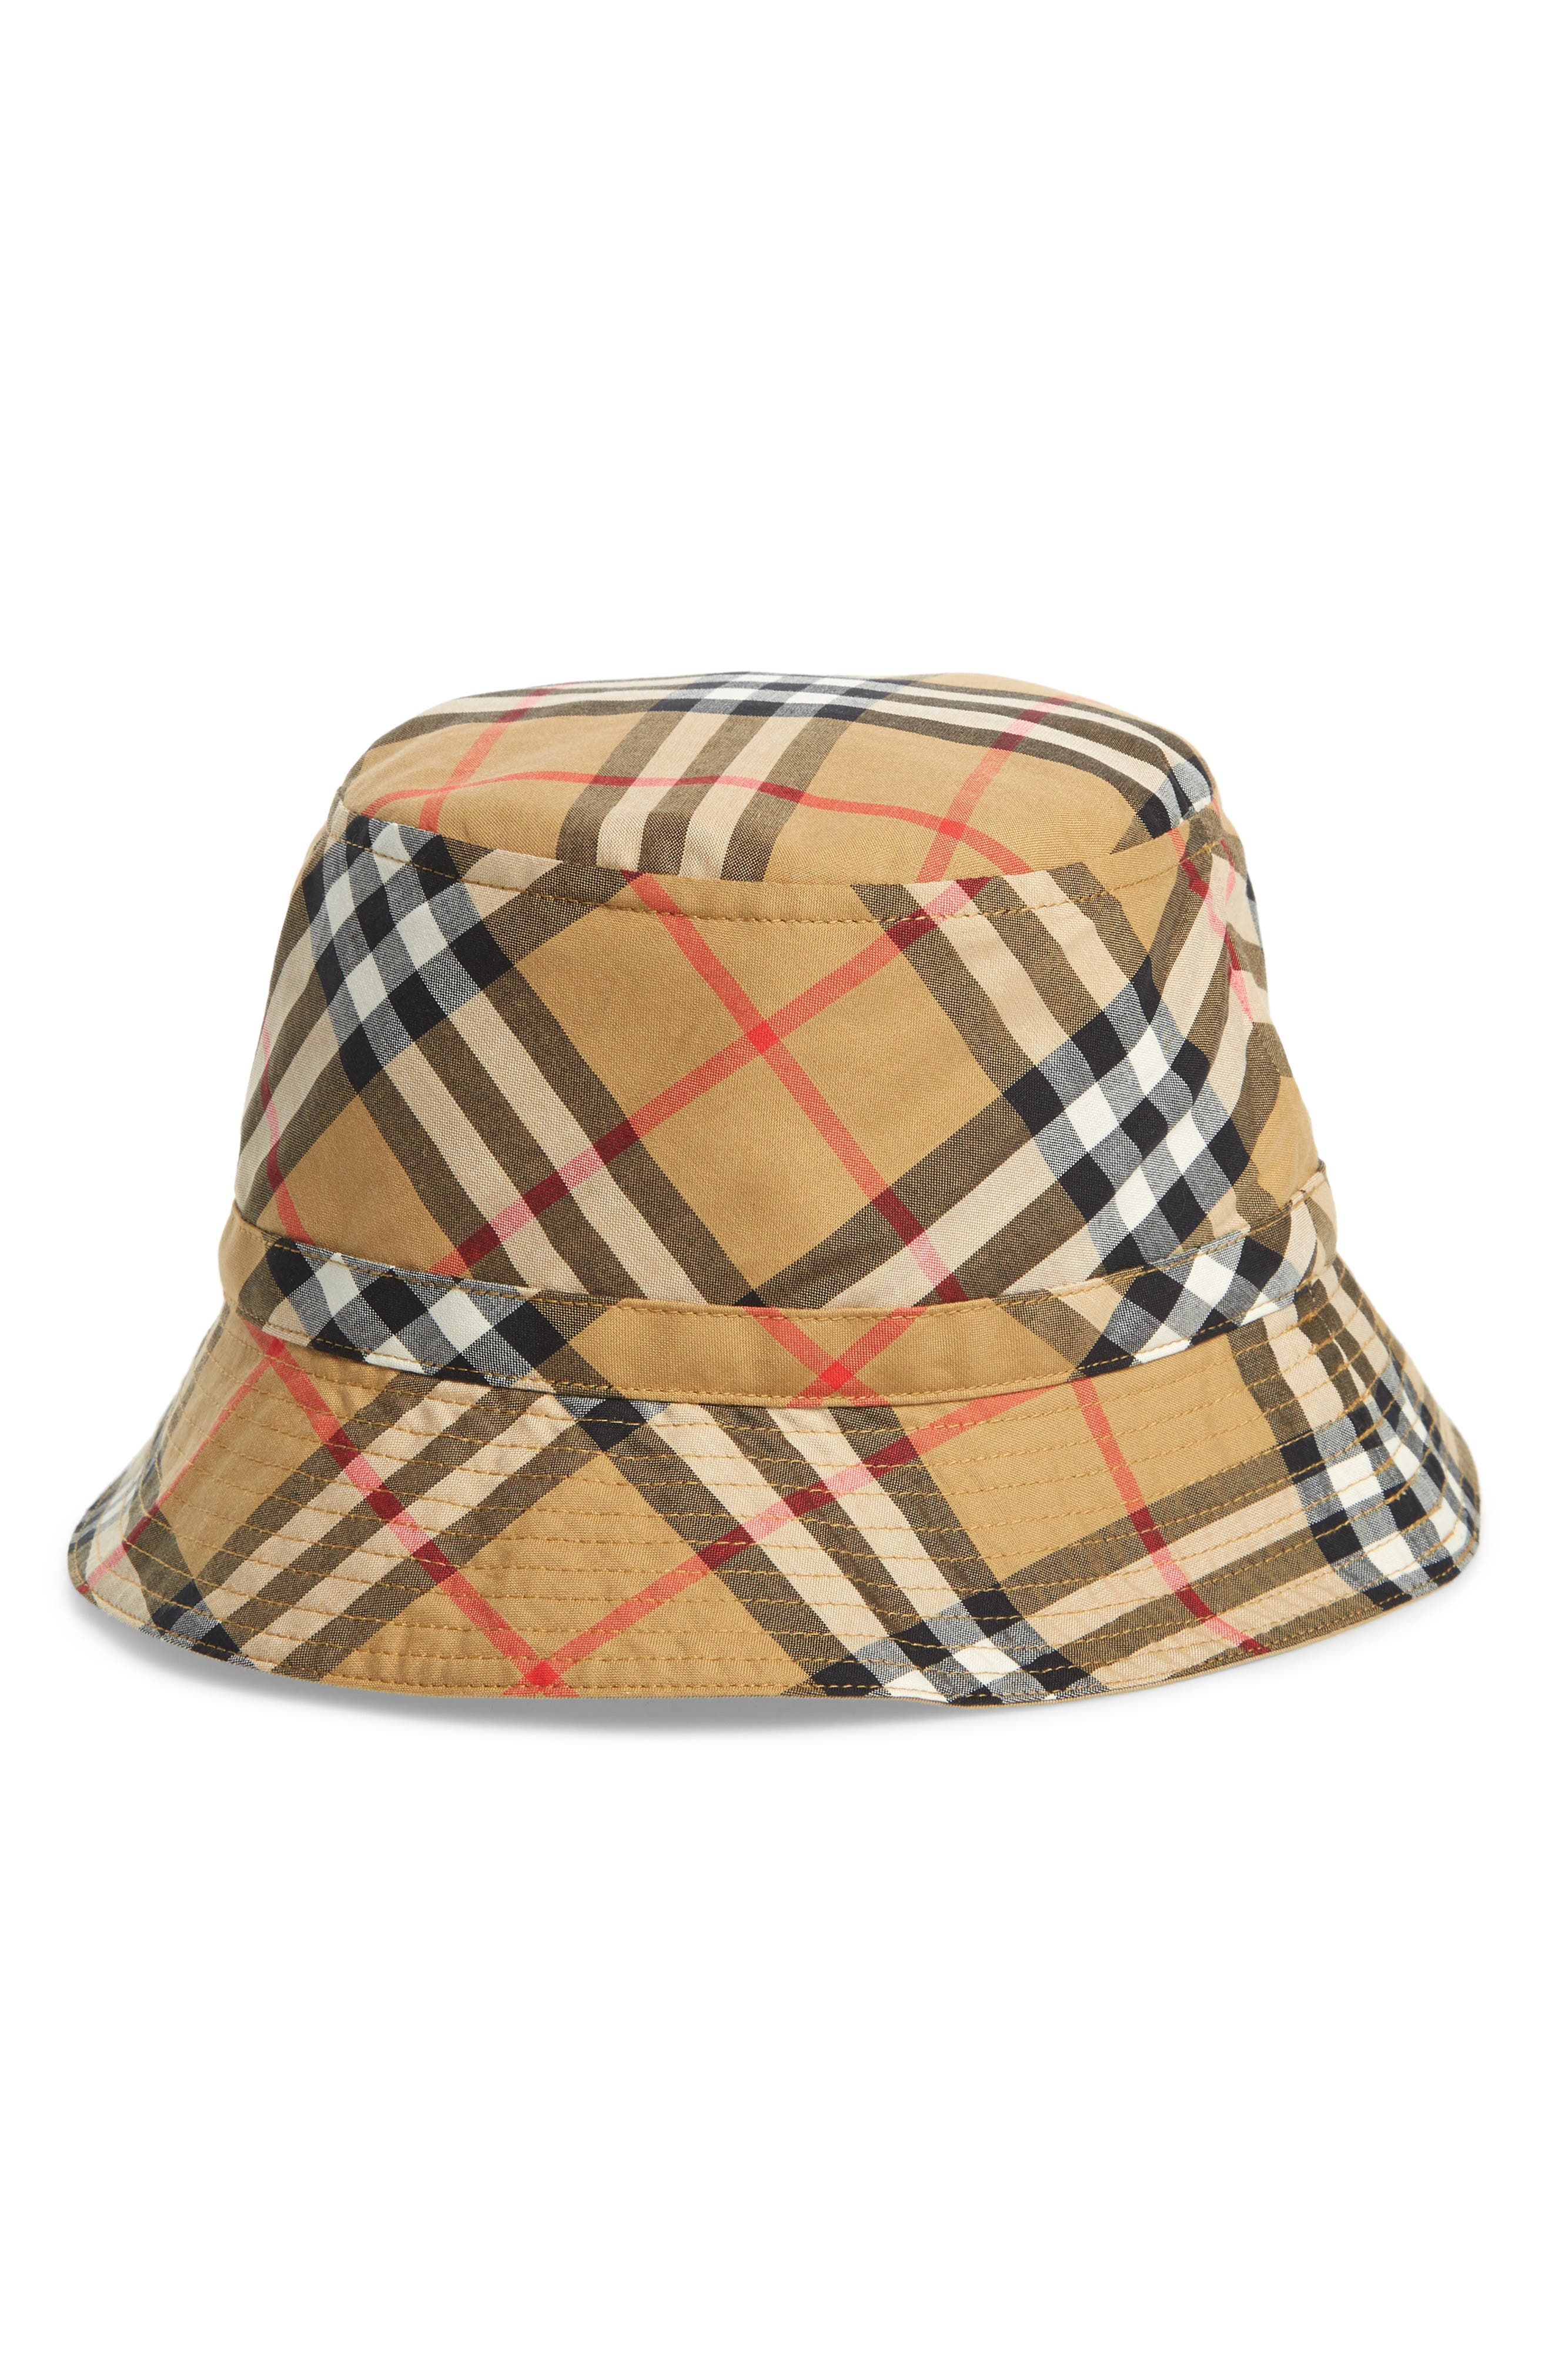 BURBERRY Chandy Check Bucket Hat, Main, color, 701